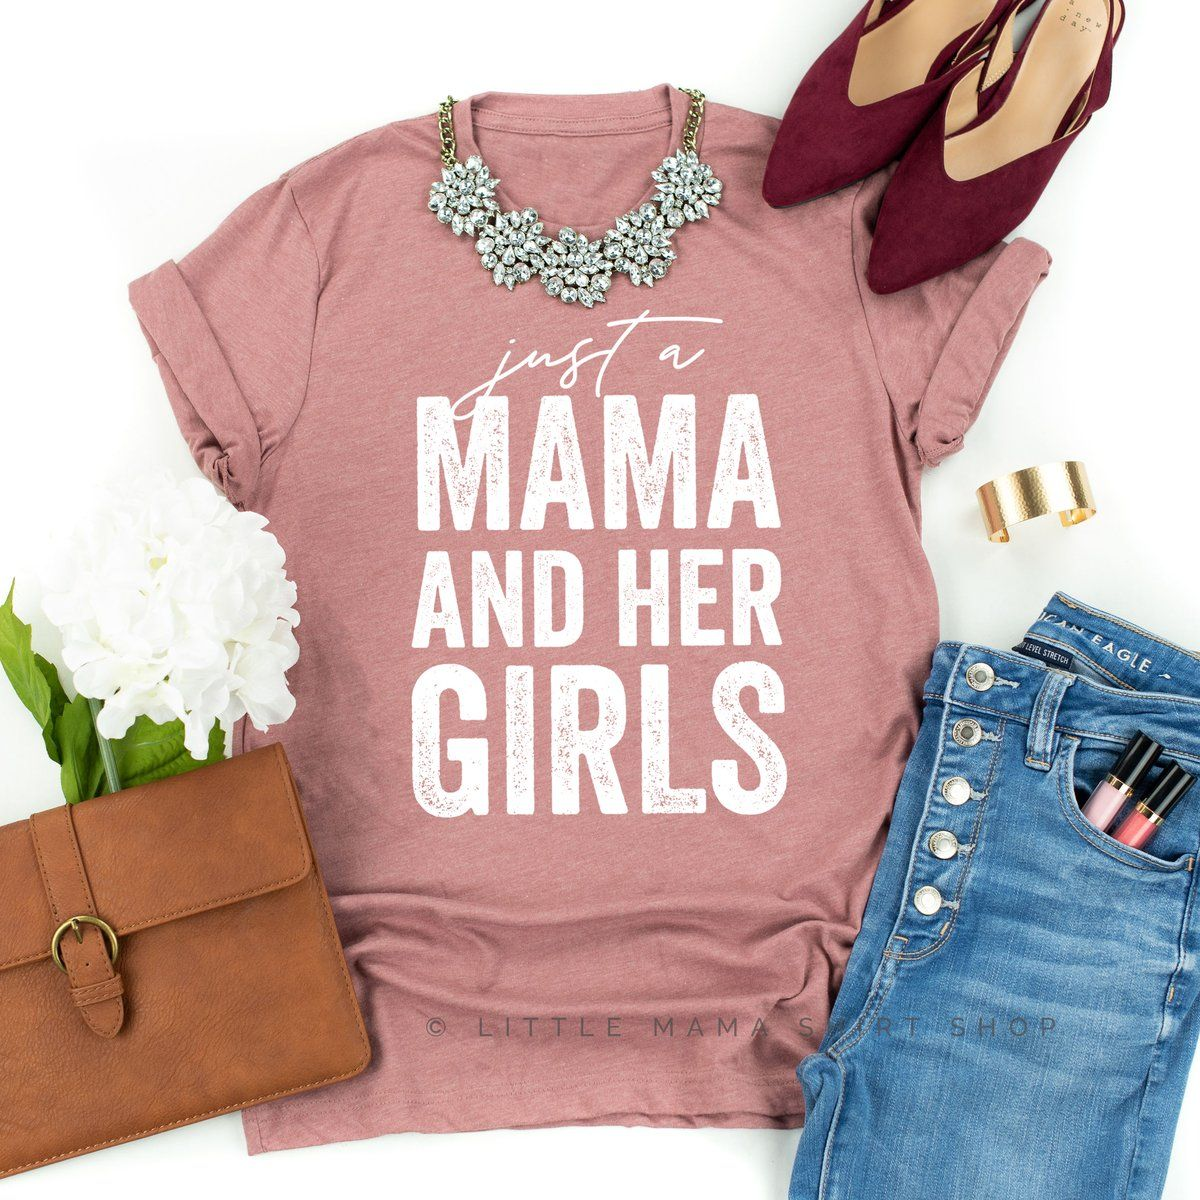 Just a Mama and Her Girls - Unisex Tee